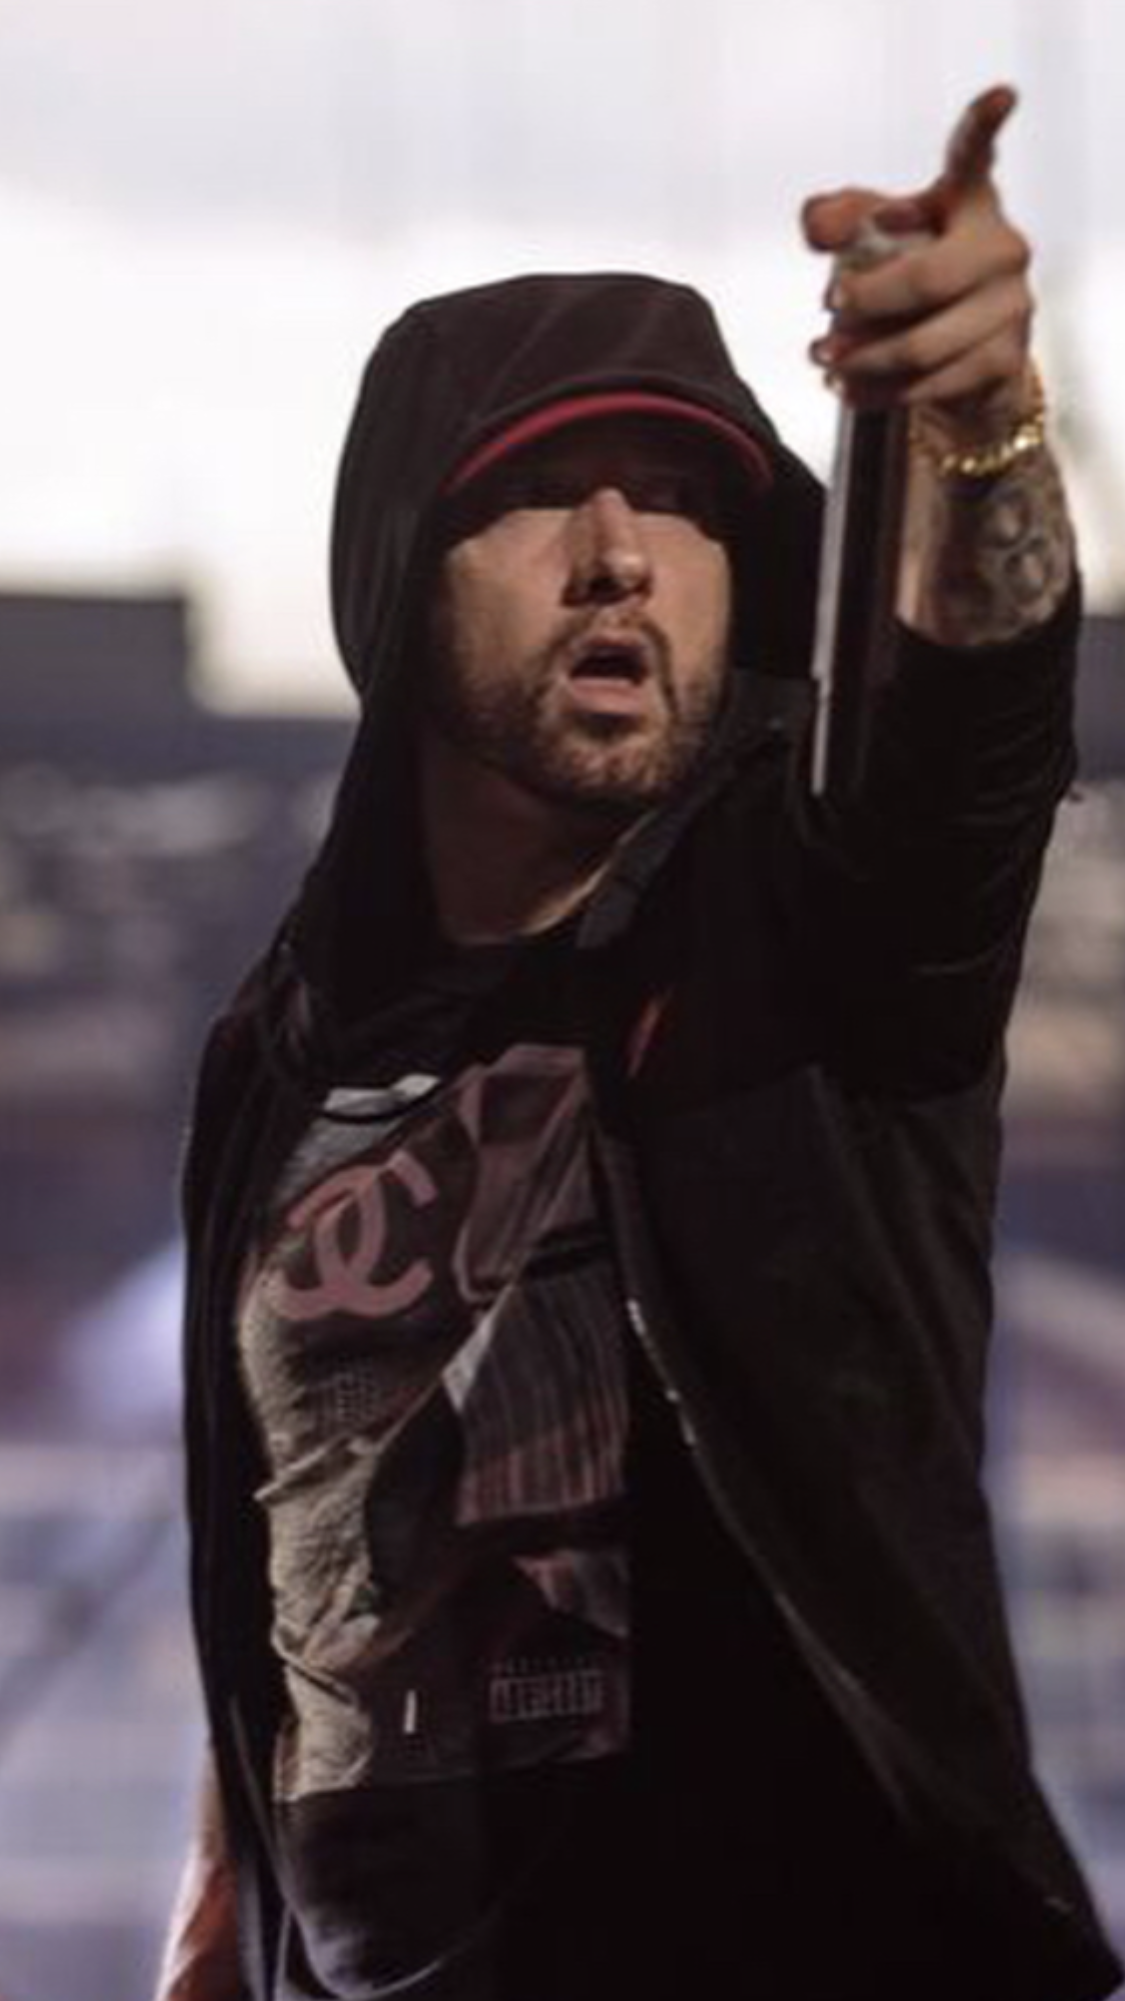 Eminem eminem pinterest eminem and beautiful people